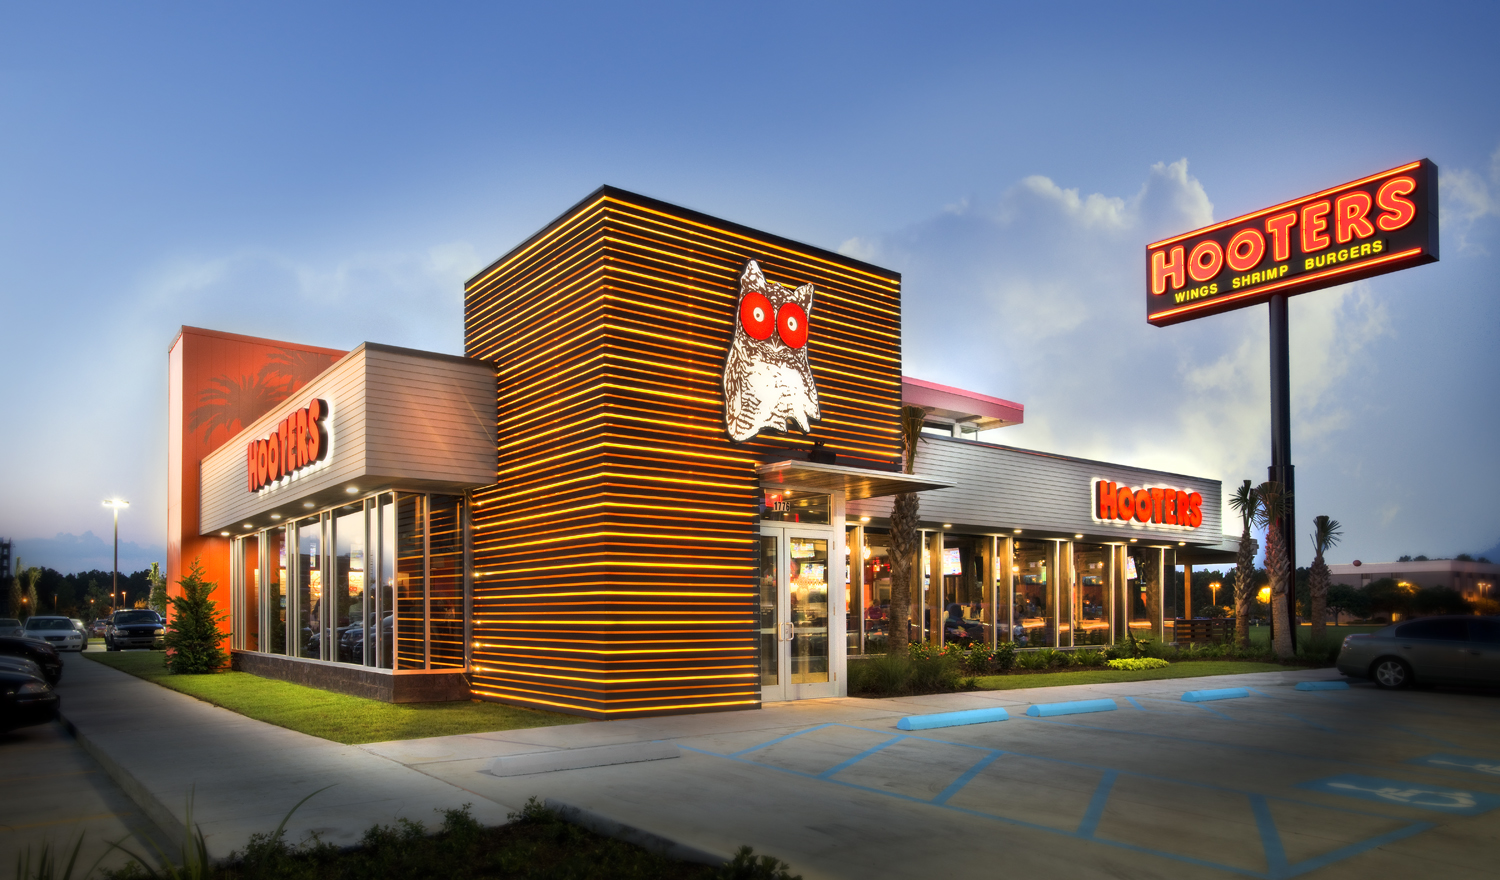 exterior of Hooters restaurant